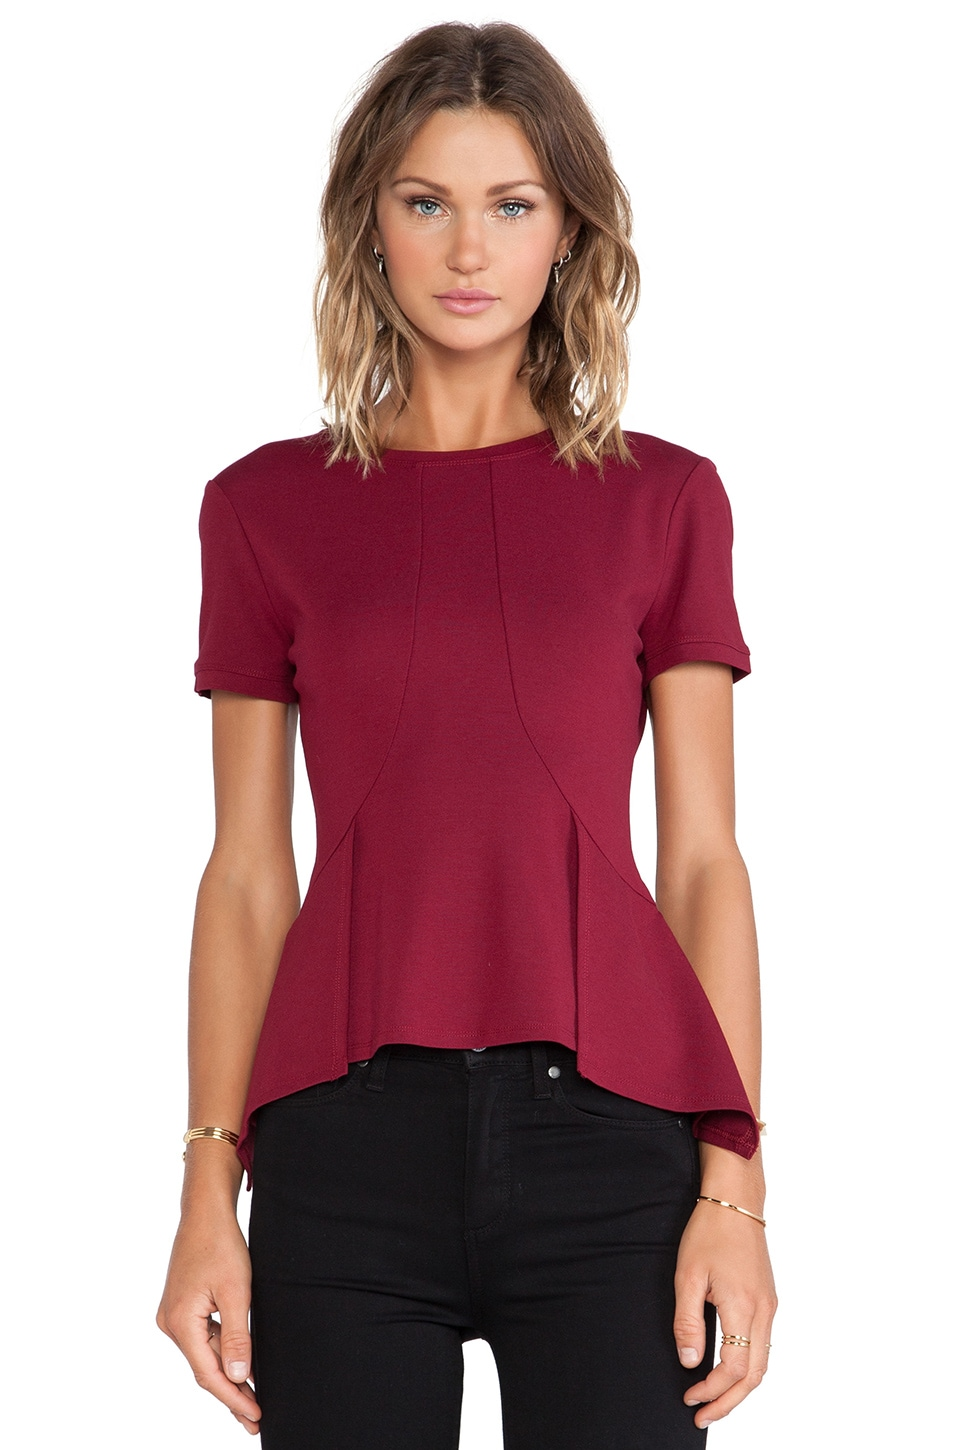 BCBGMAXAZRIA Scarlet Peplum Top in Deep Cranberry